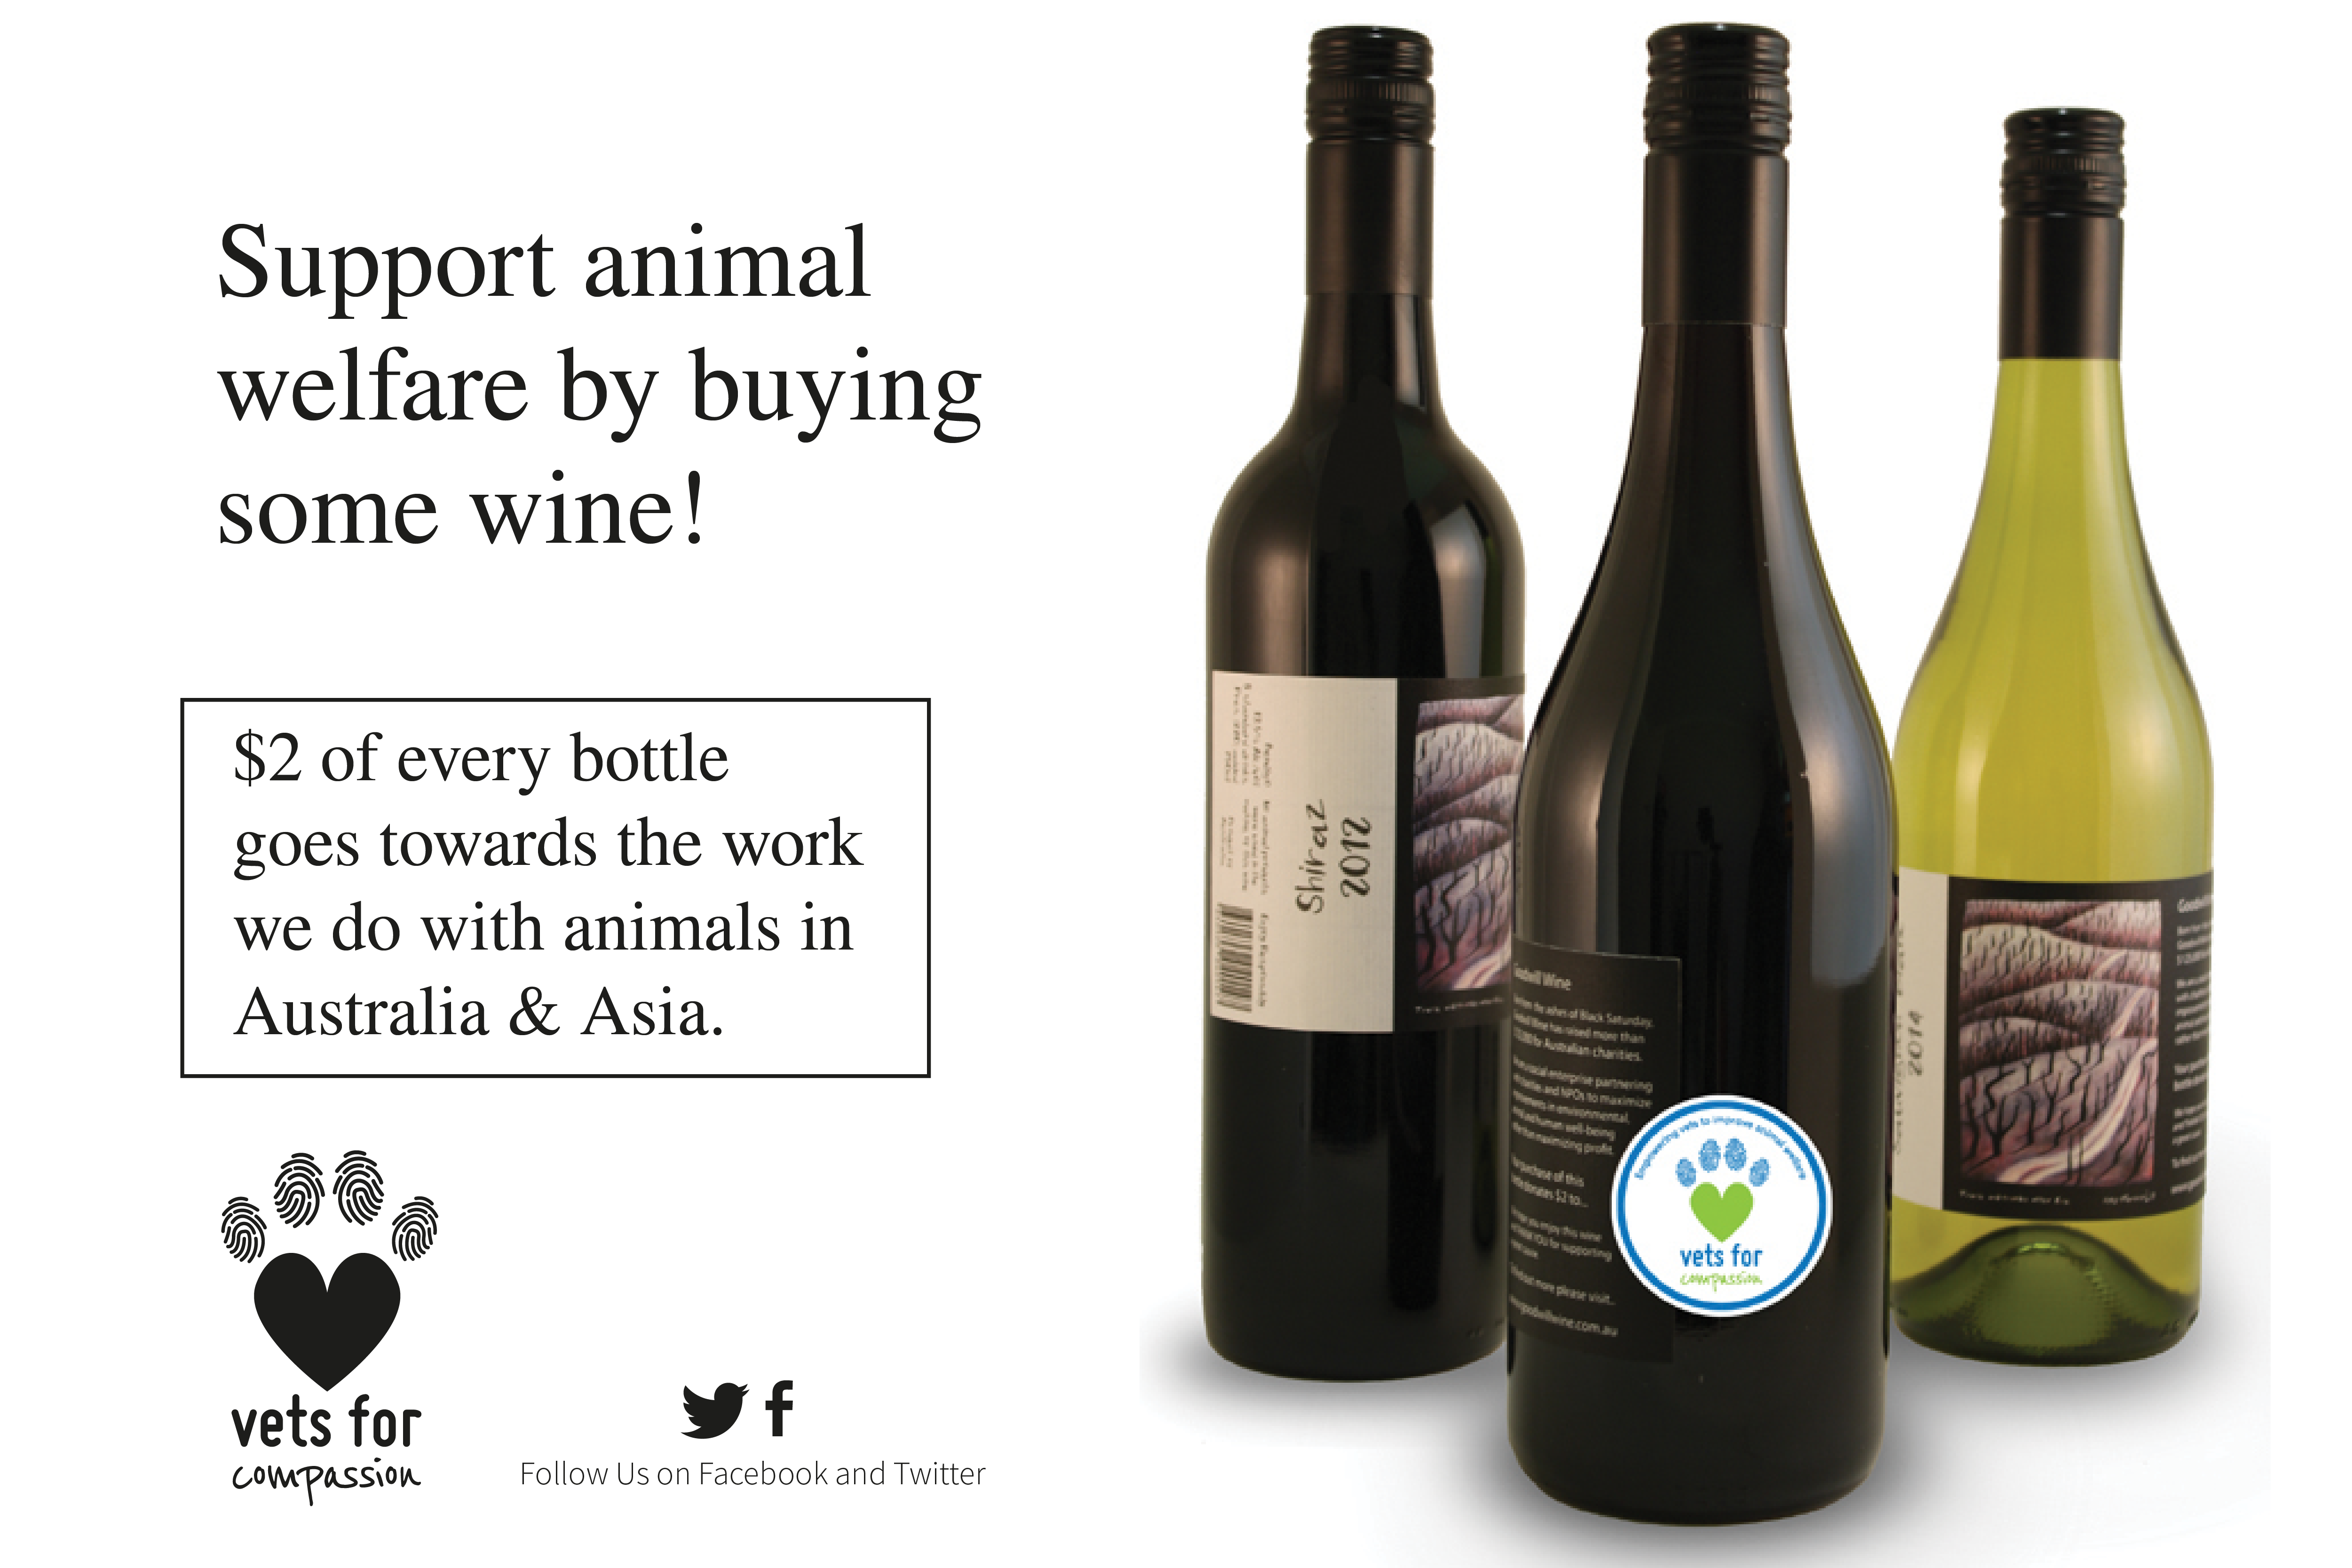 Buy Goodwill Wine & help Vets For Compassion